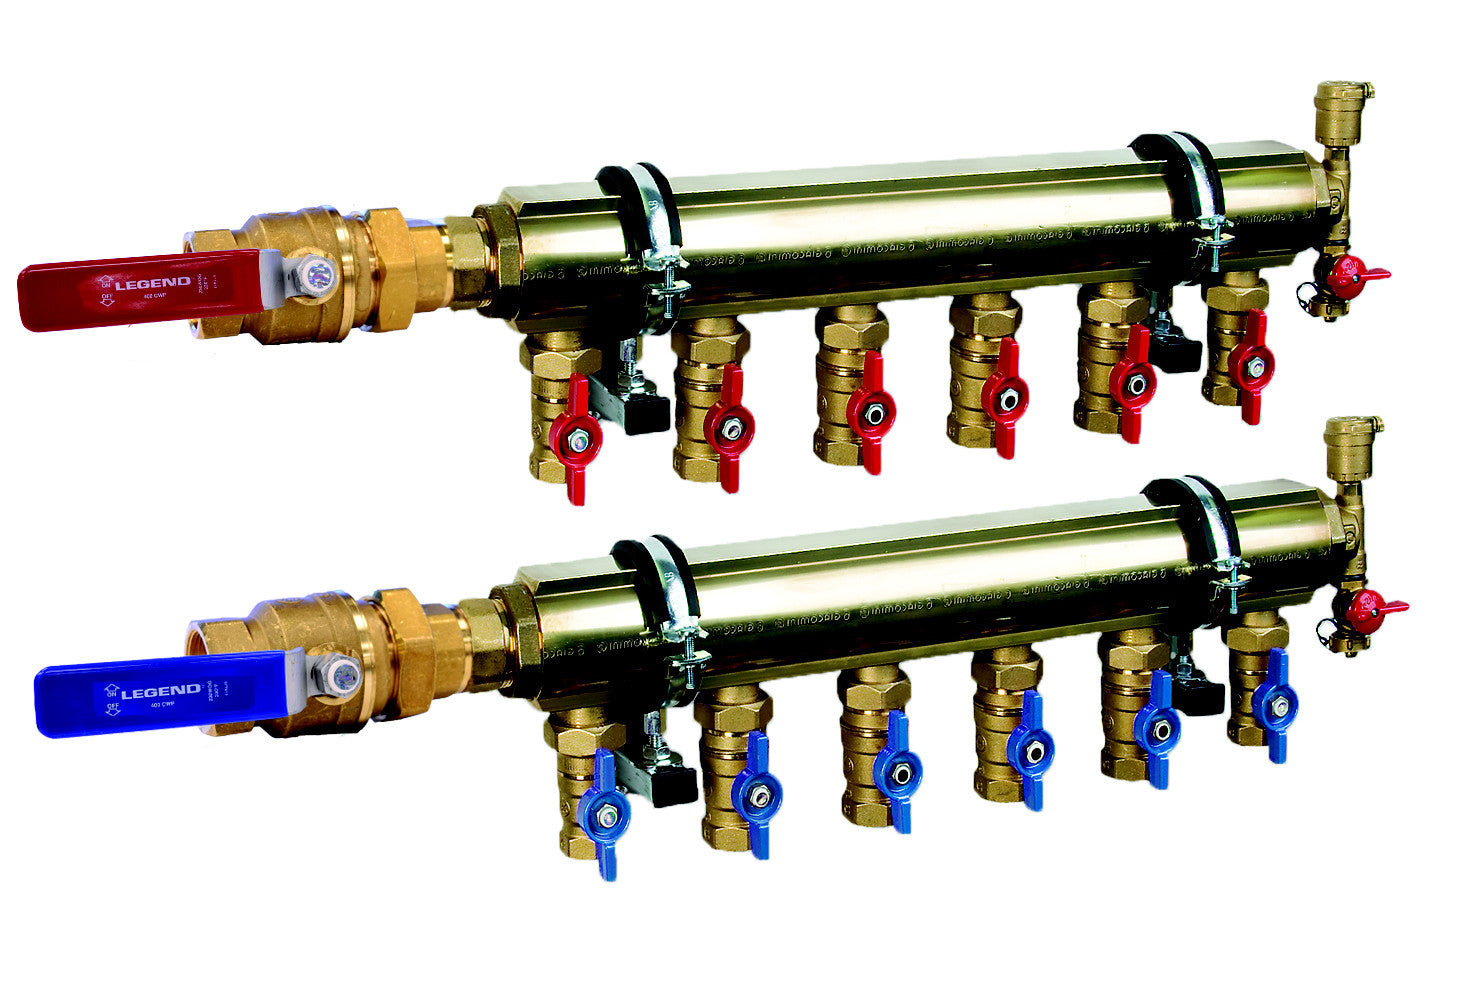 "LEGEND HYDRONICS 8220-15-2   2 PORT 1-1/2"" HI-CAPACITY MANIFOLD BASE - 2 BRACKETS"